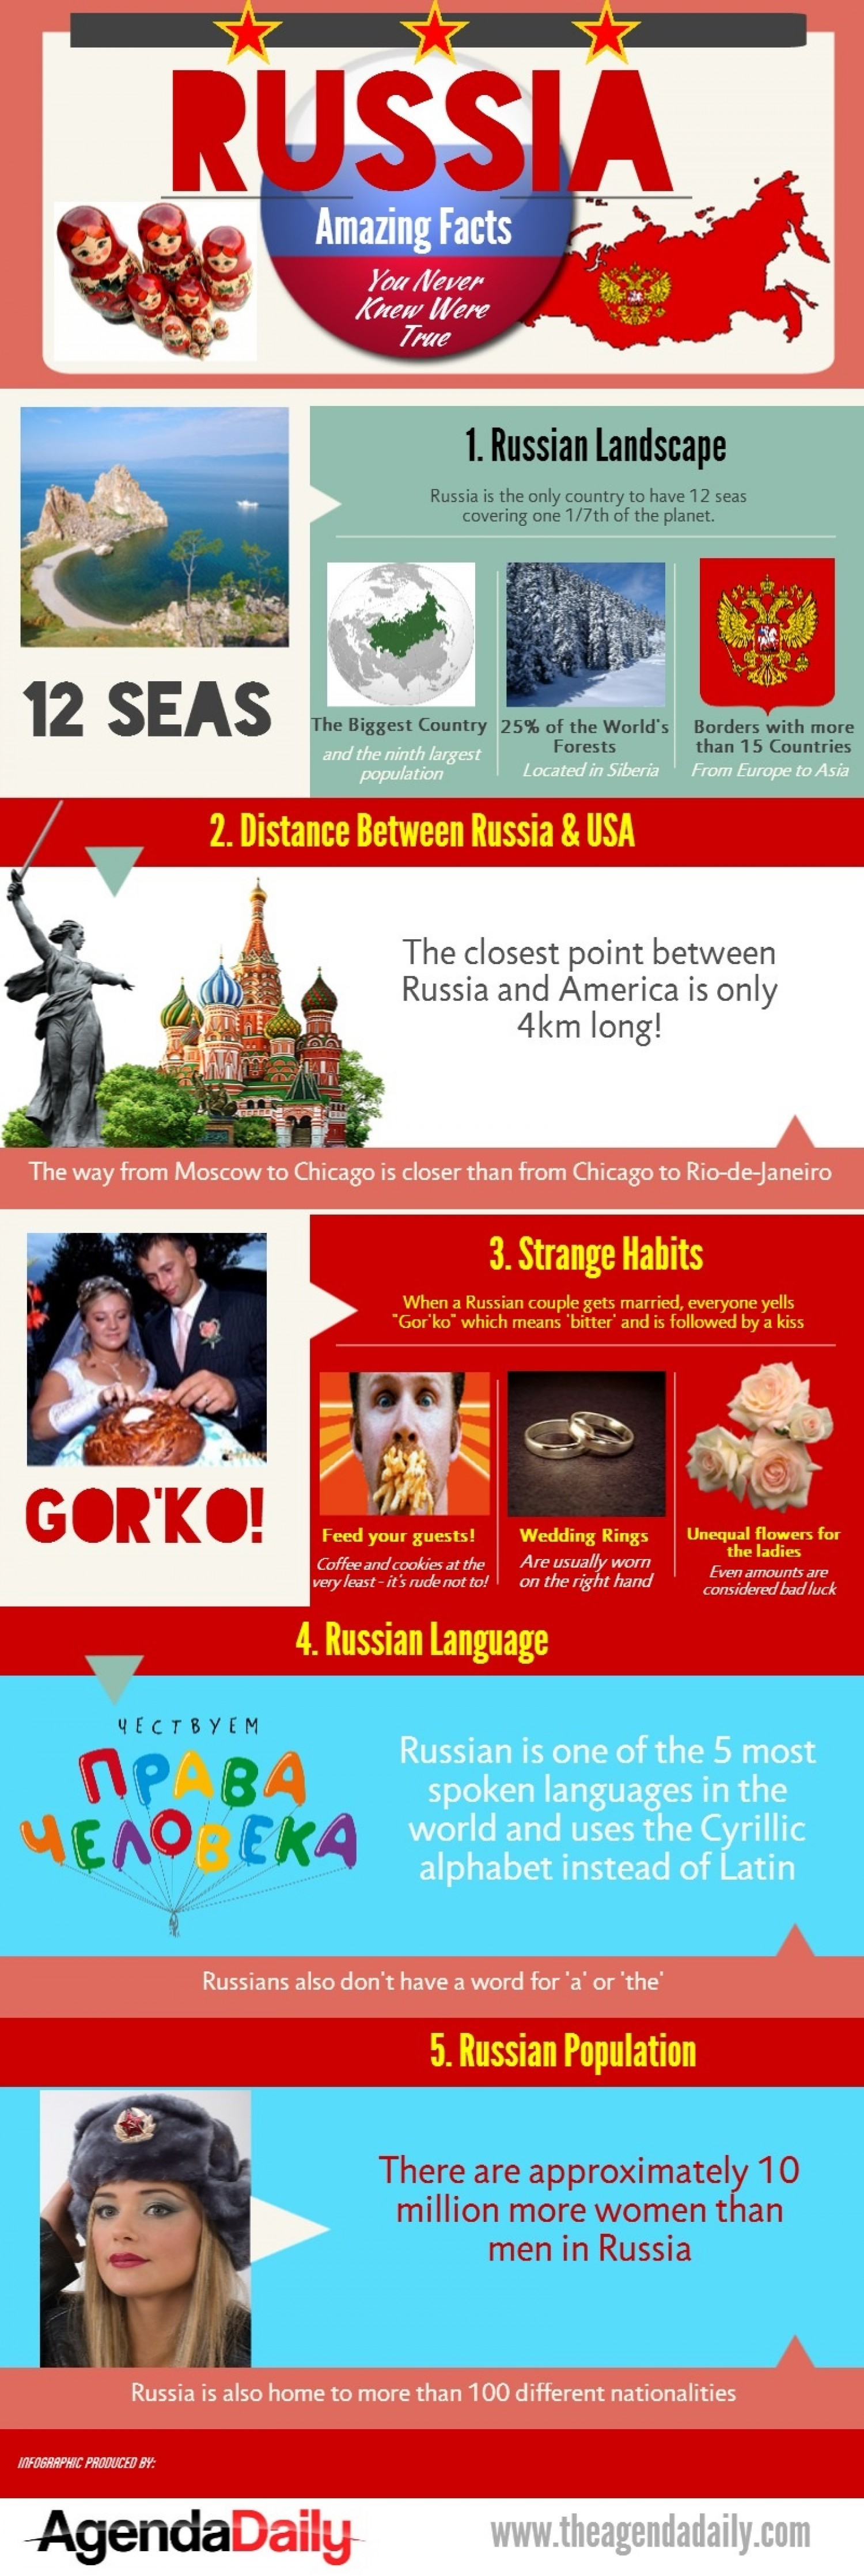 03 amazing-facts-about-russia_5305295300461_w1500